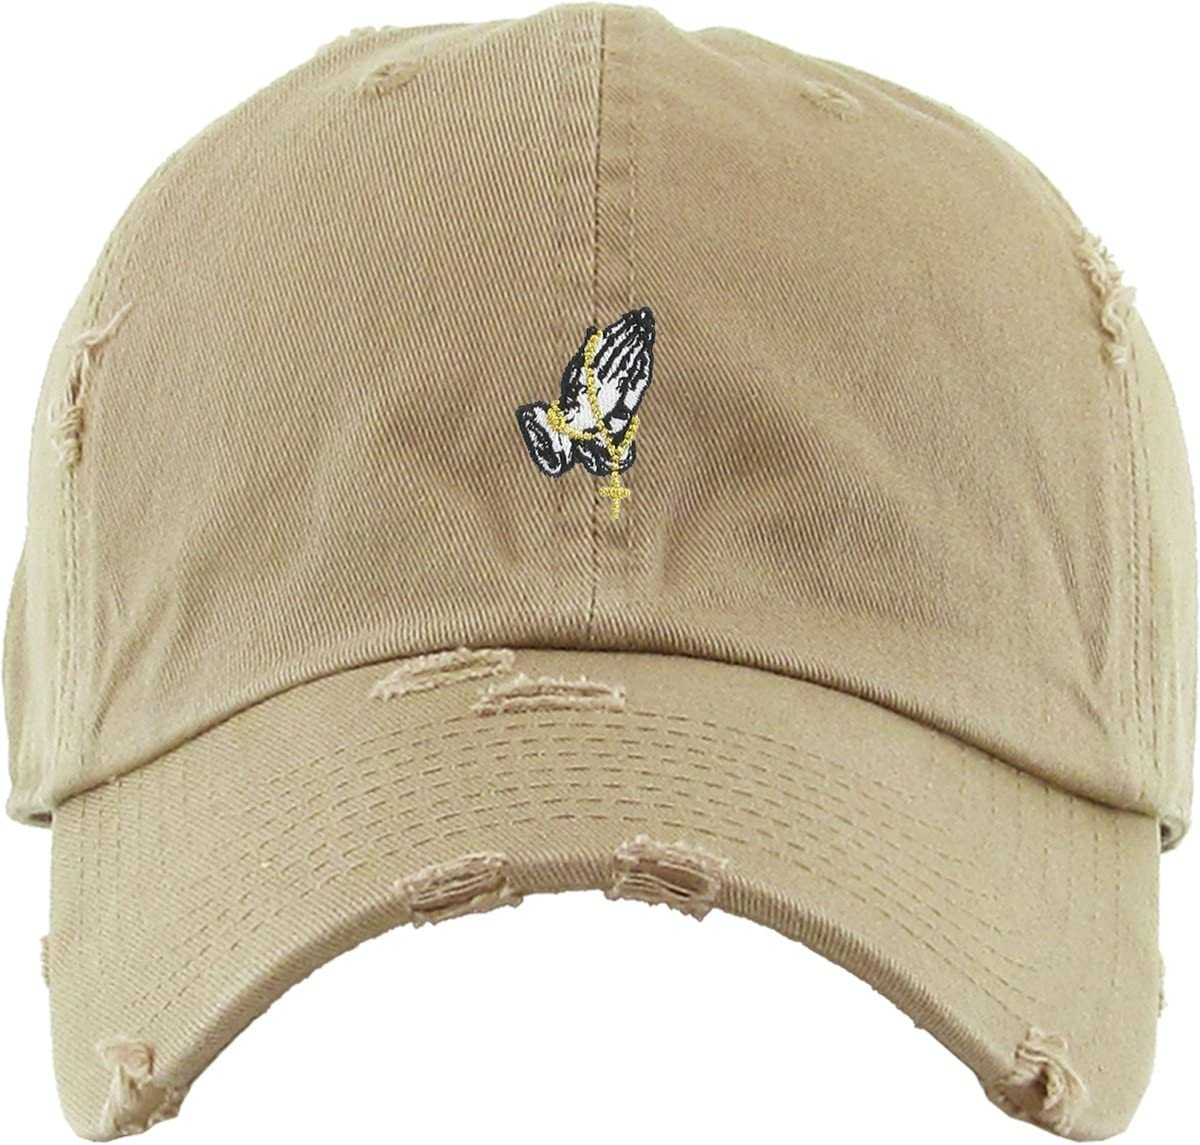 KBETHOS Praying Hands Rosary Savage Dad Hat Baseball Cap Unconstructed Polo Style Adjustable